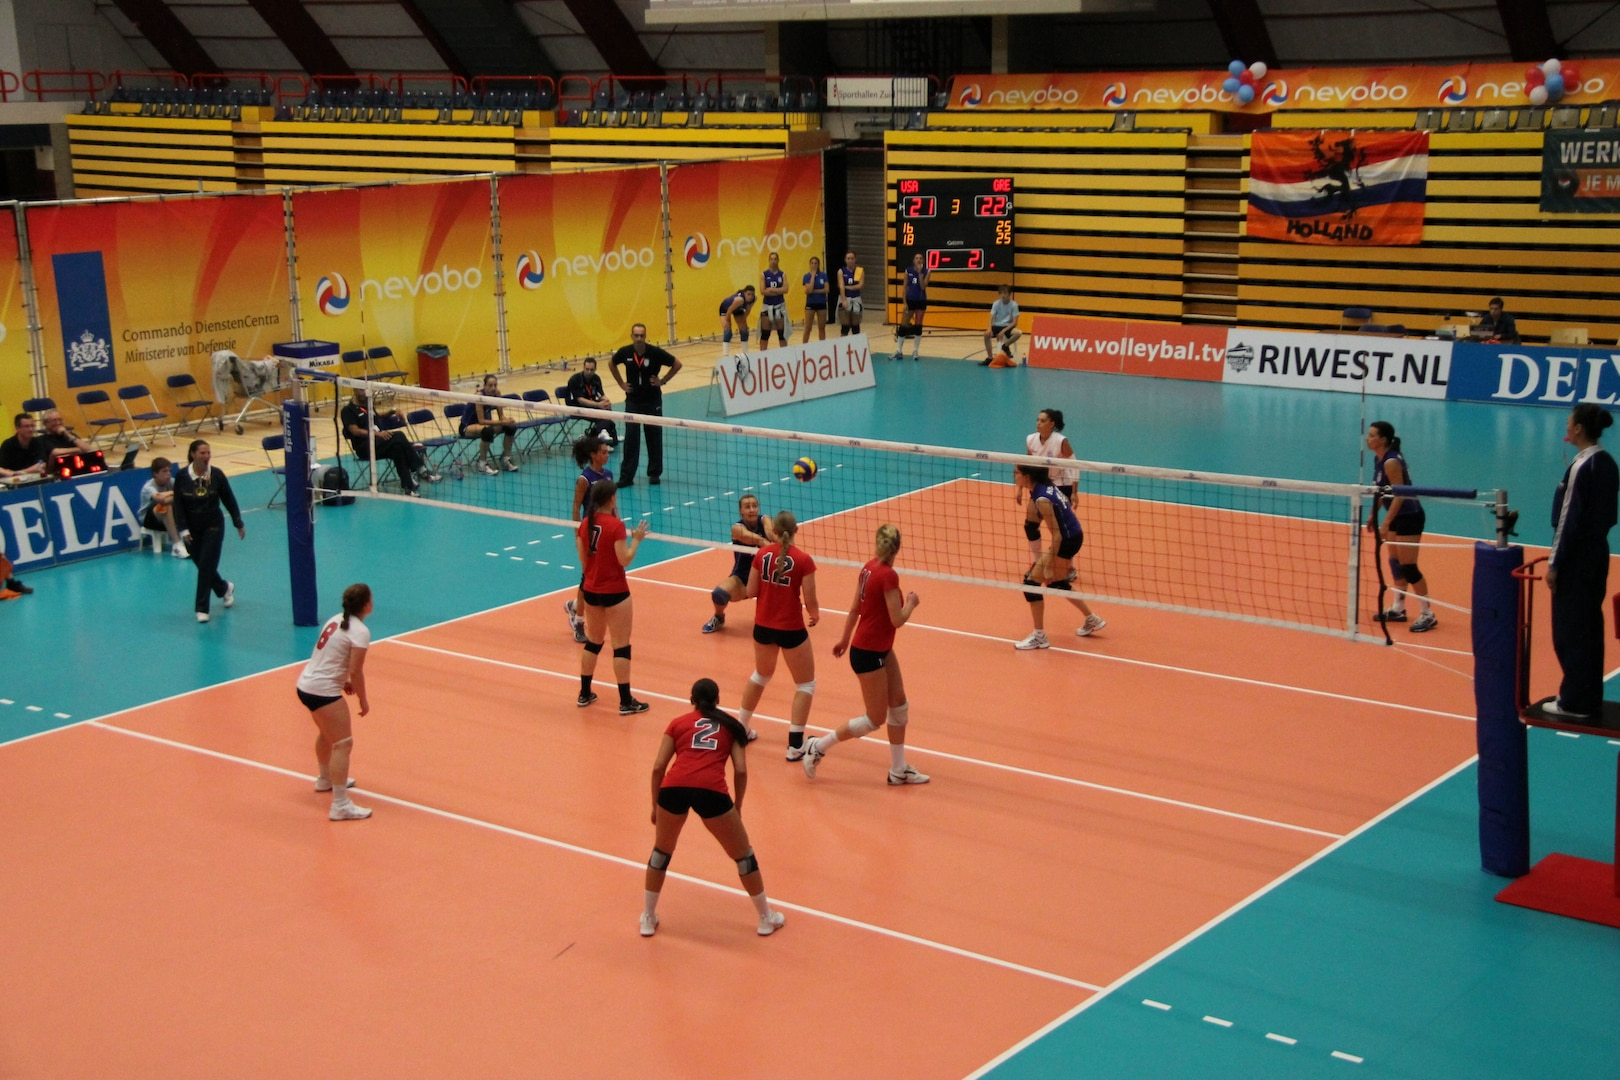 U.S. Armed Forces Women's Volleyball team playing in Amsterdam, Netherlands in 2012 at the CISM World Championship.